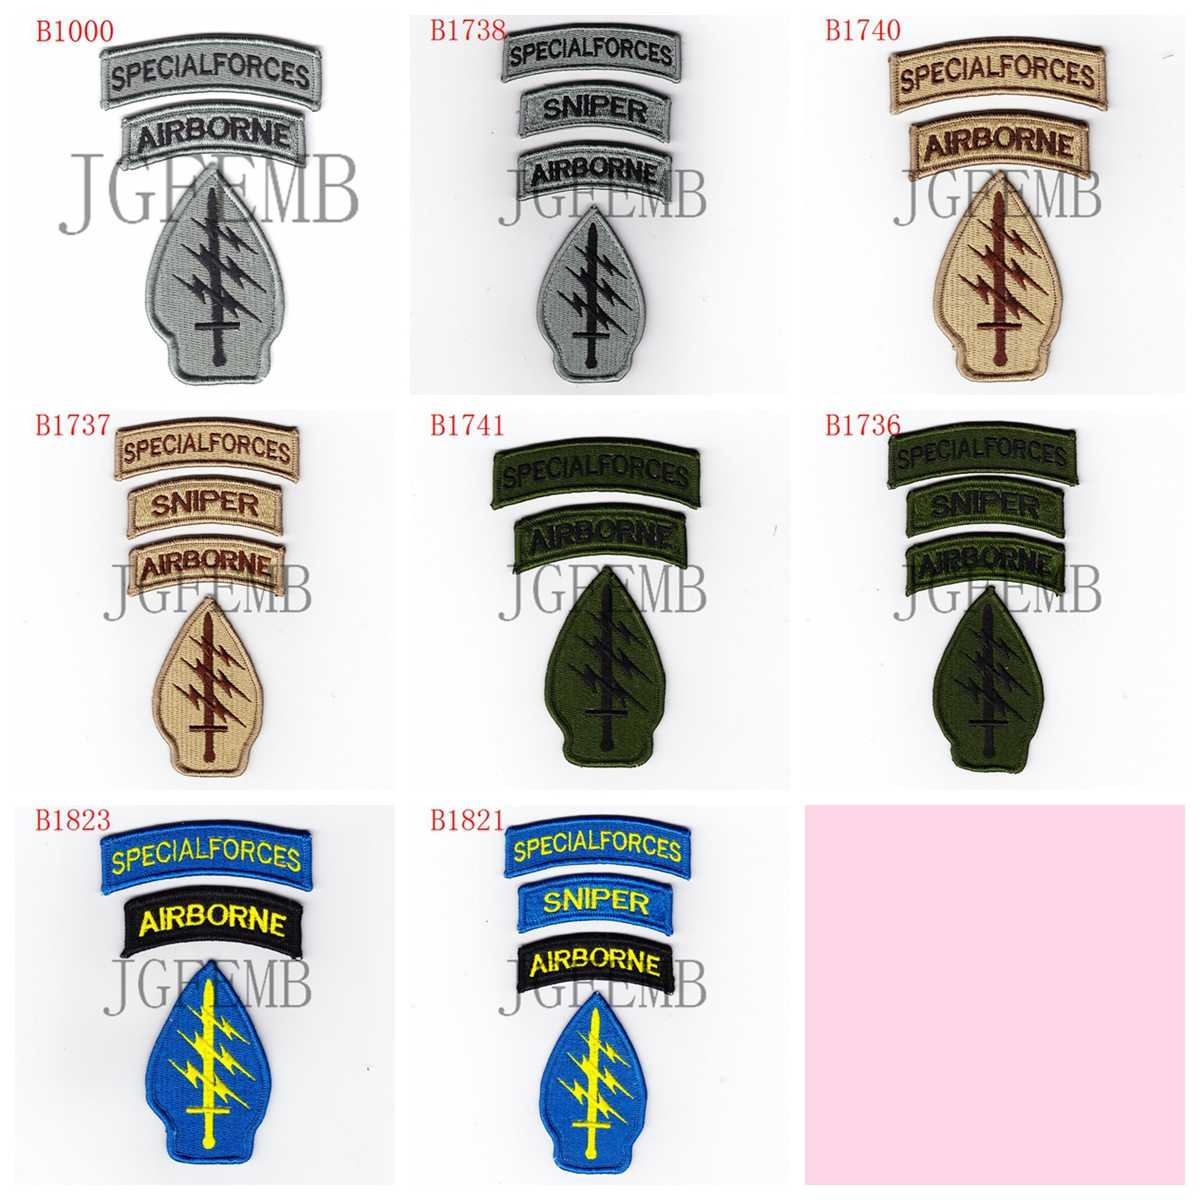 8327f97459a Special Force airborne Lightning and sword Morale tactics Military Full  Embroidery patch